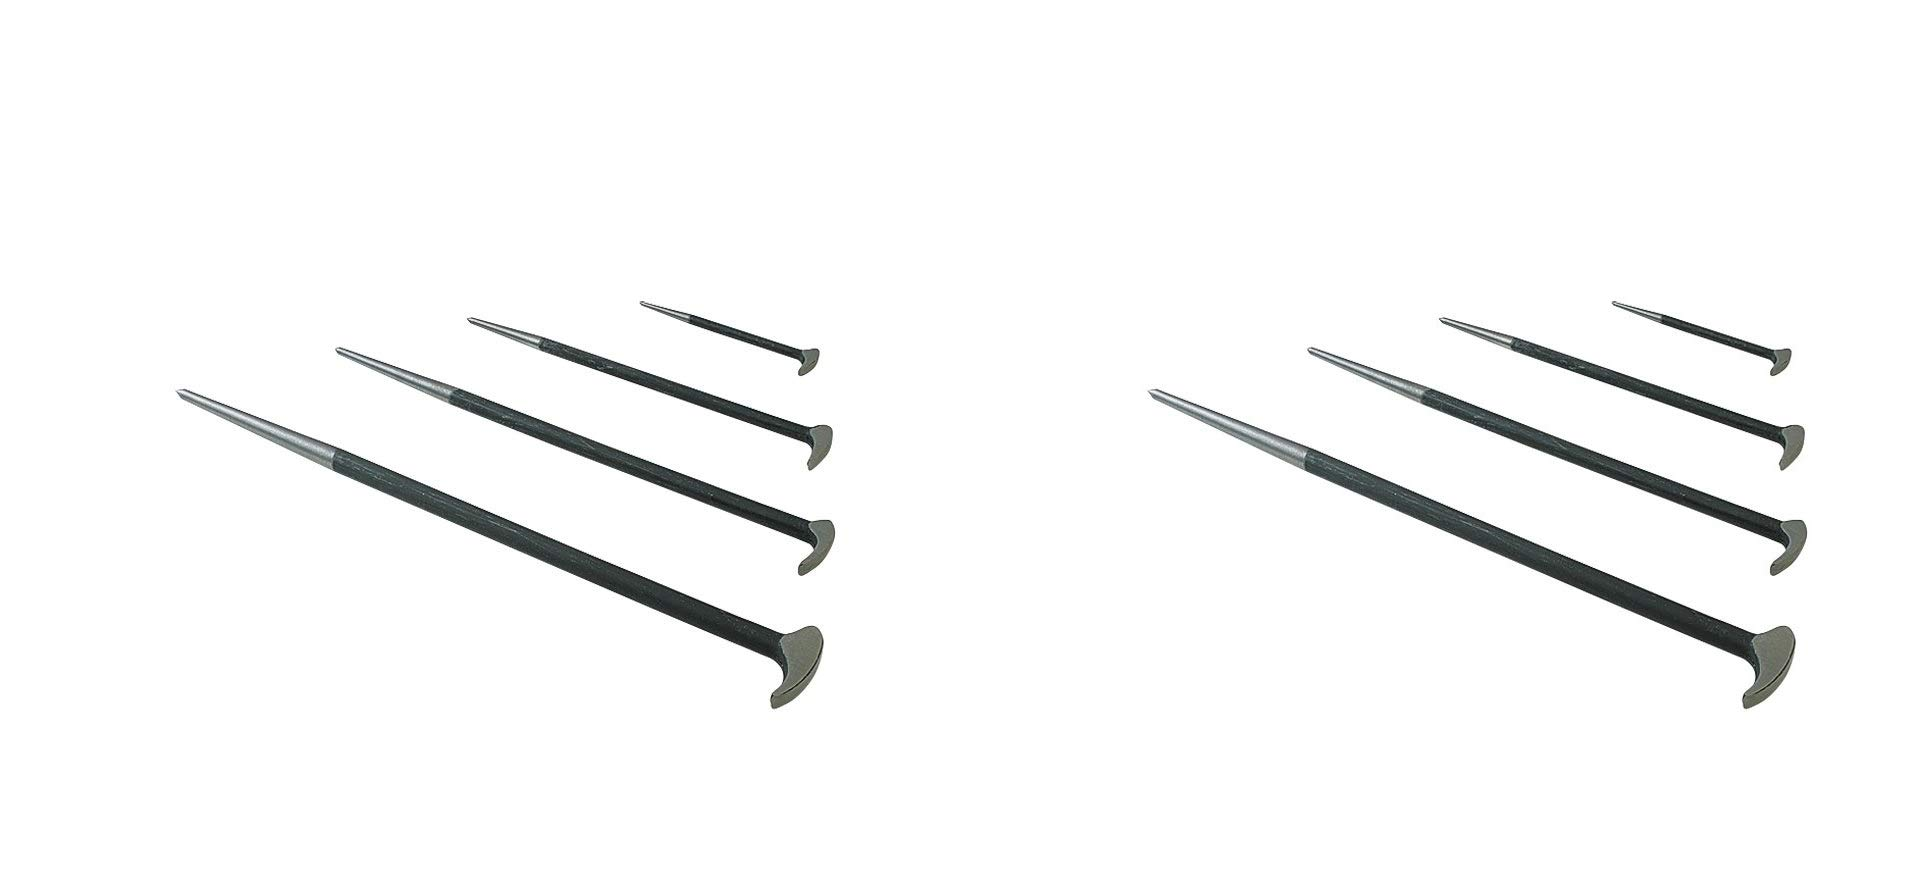 Sunex 9804 Rolling Head Pry Bar Set, 6-Inch - 20-Inch, 4-Piece (Pack of 2)